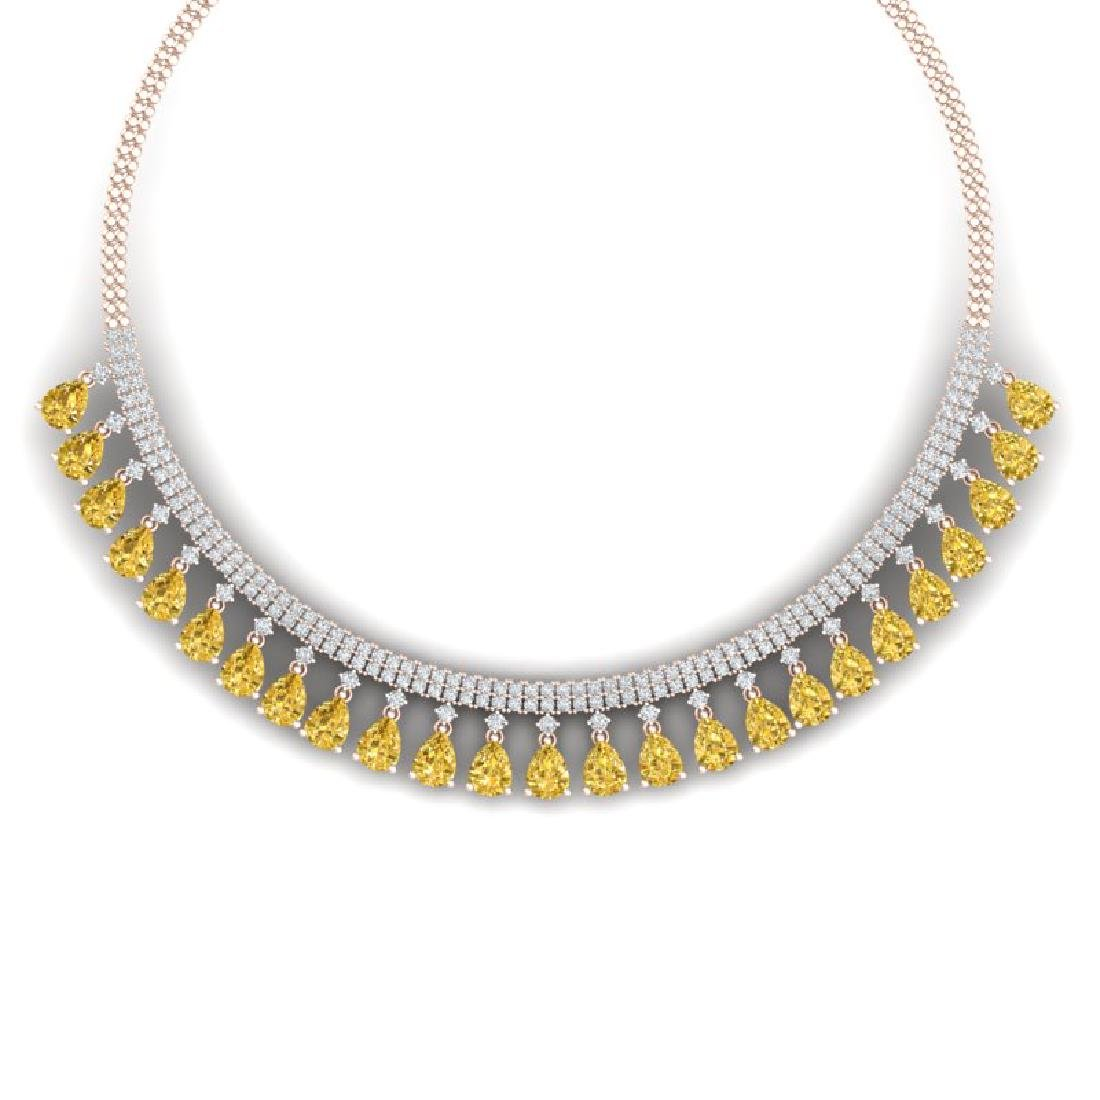 39.66 CTW Royalty Canary Citrine & VS Diamond Necklace